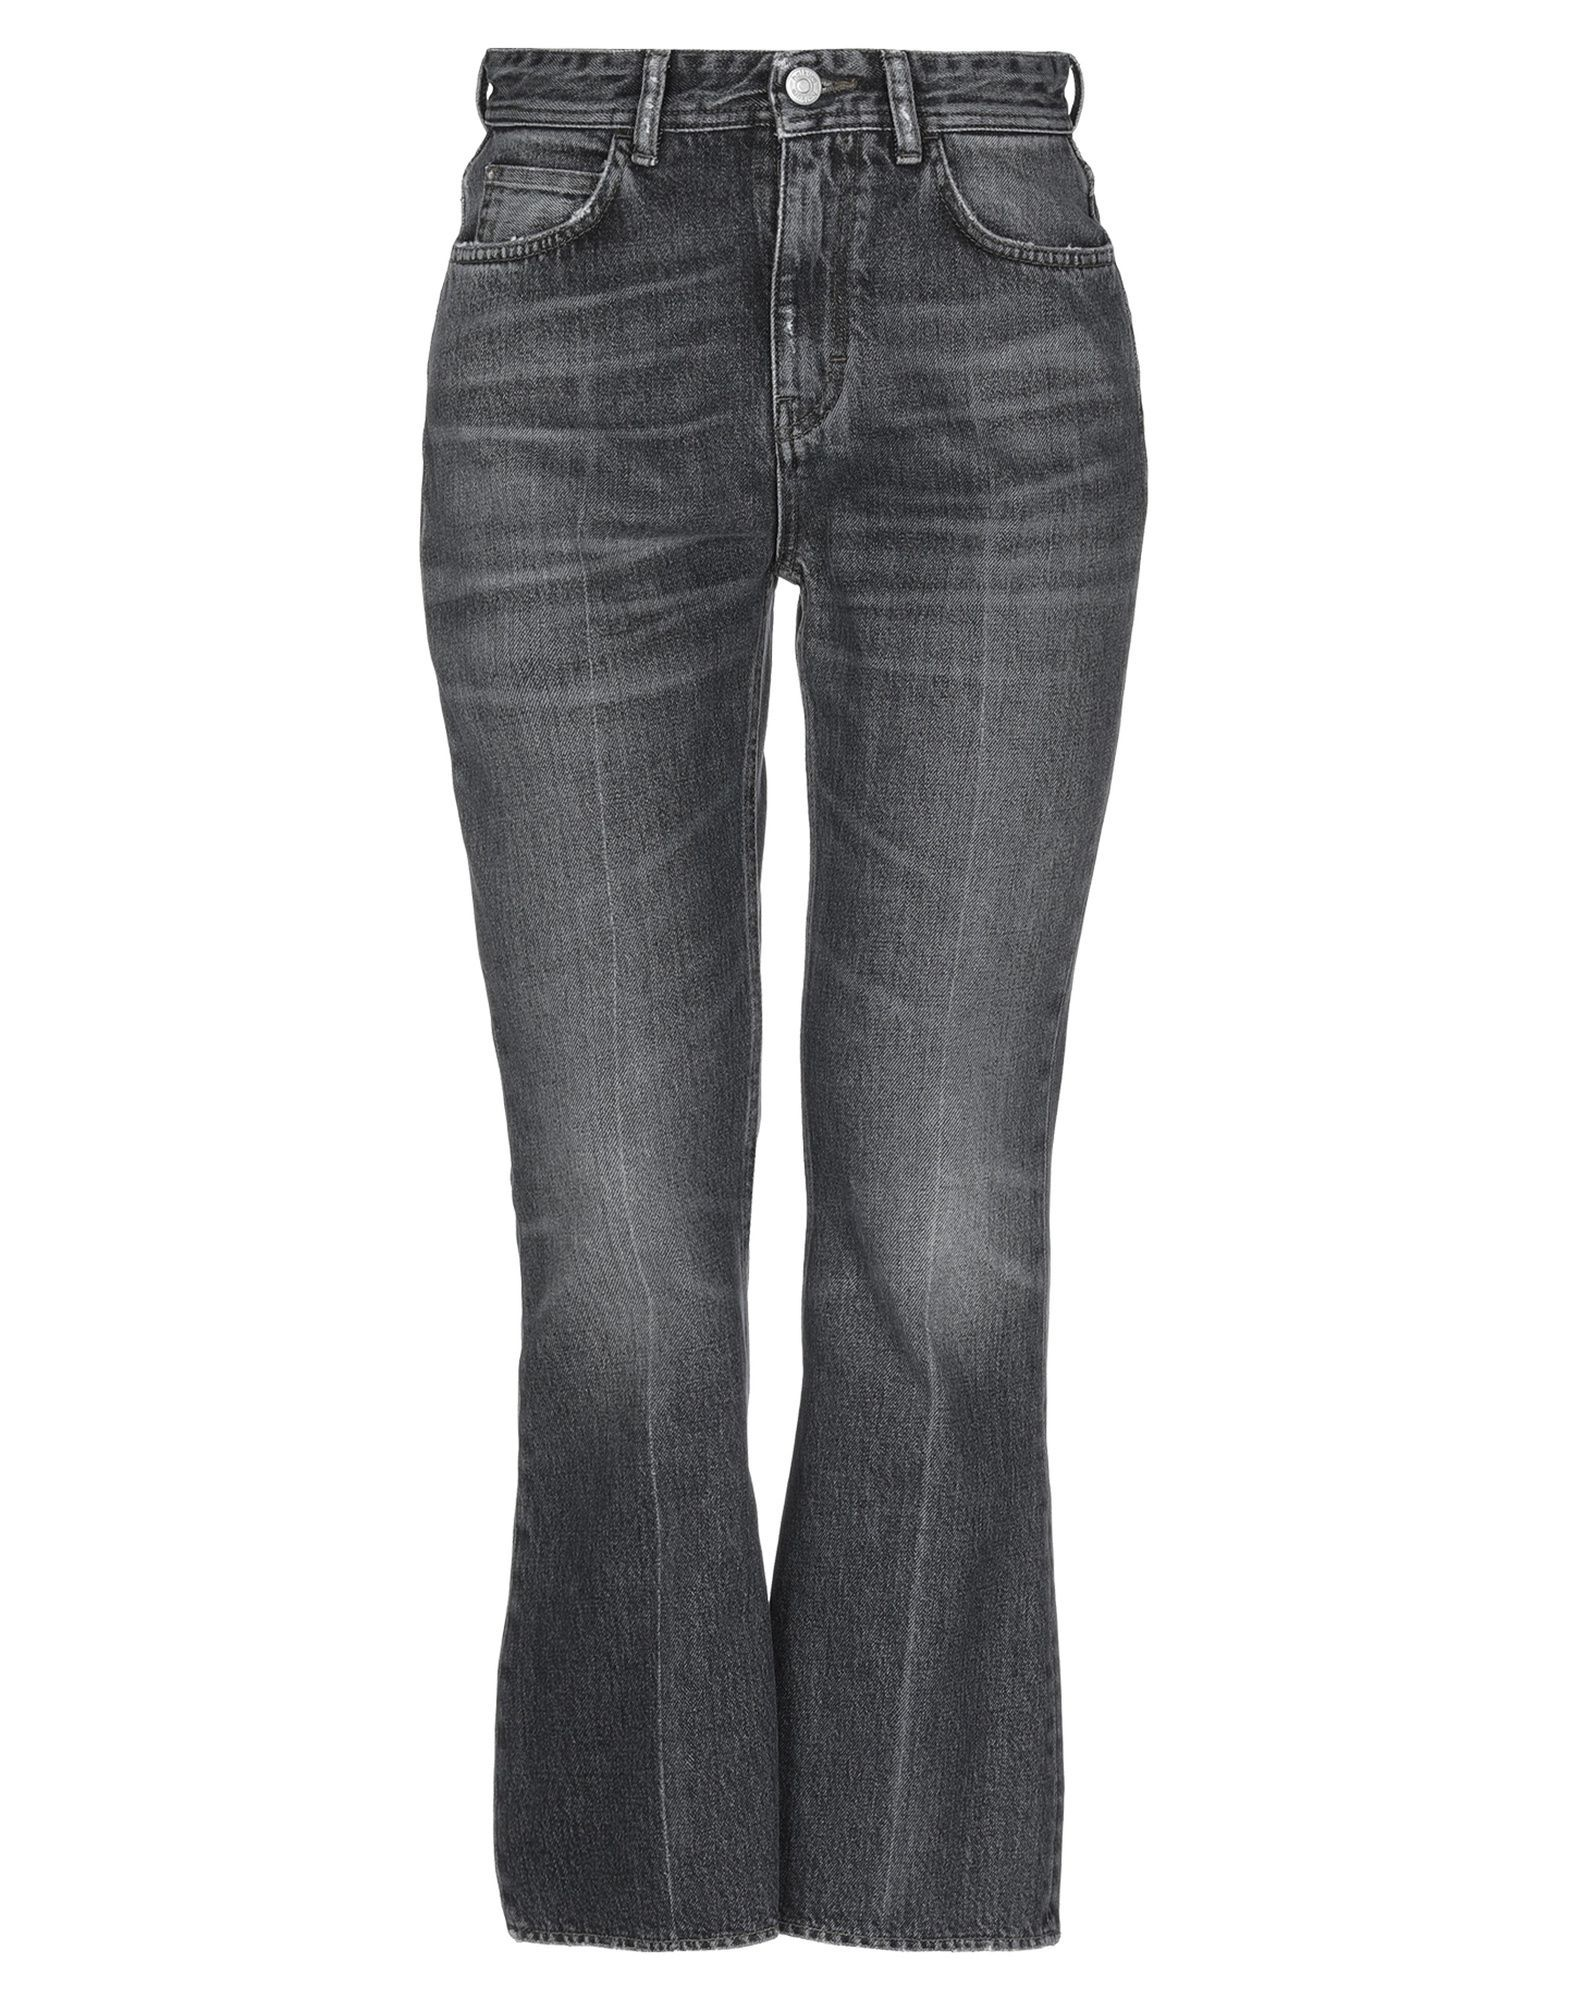 Haikure Black Cotton High Waisted Jeans